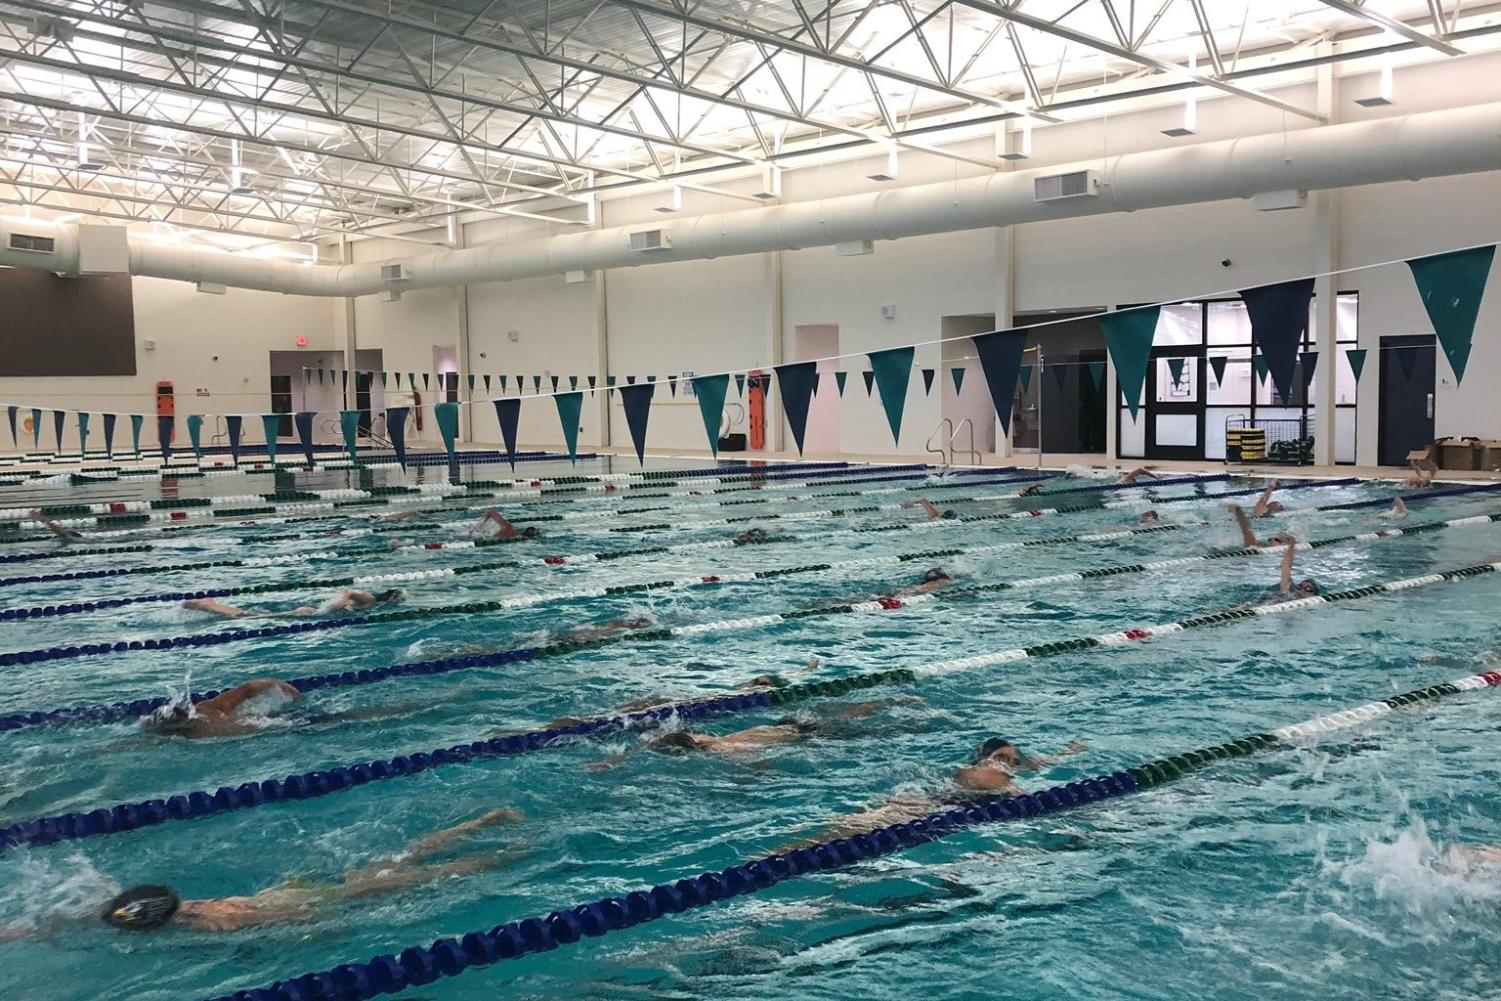 The Swim/Dive team enjoys their first year of practice in the newly opened Natatorium. The team has their first meet coming up on September 28. In preparation for the meet, the varsity team practices for two hours every morning, ready for the competition.